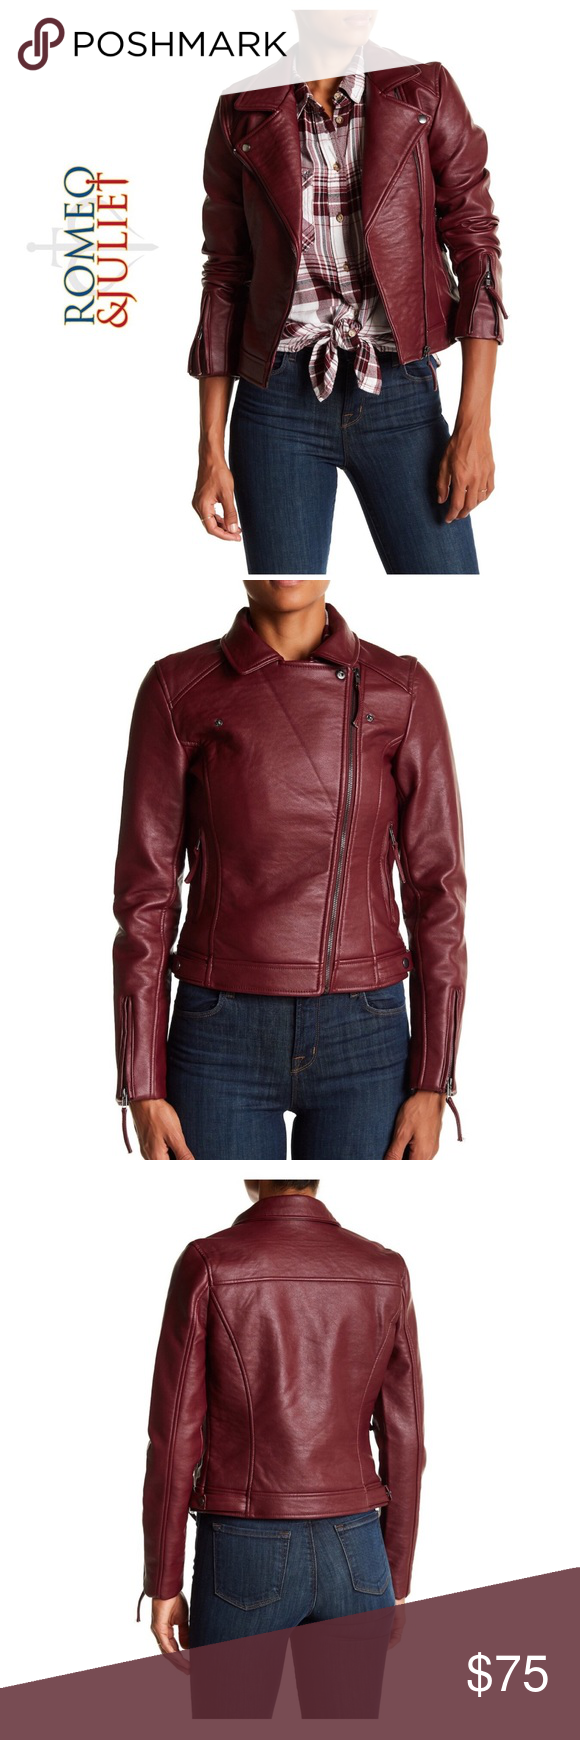 Romeo & Juliet Burgundy Faux Leather Moto Jacket NWT